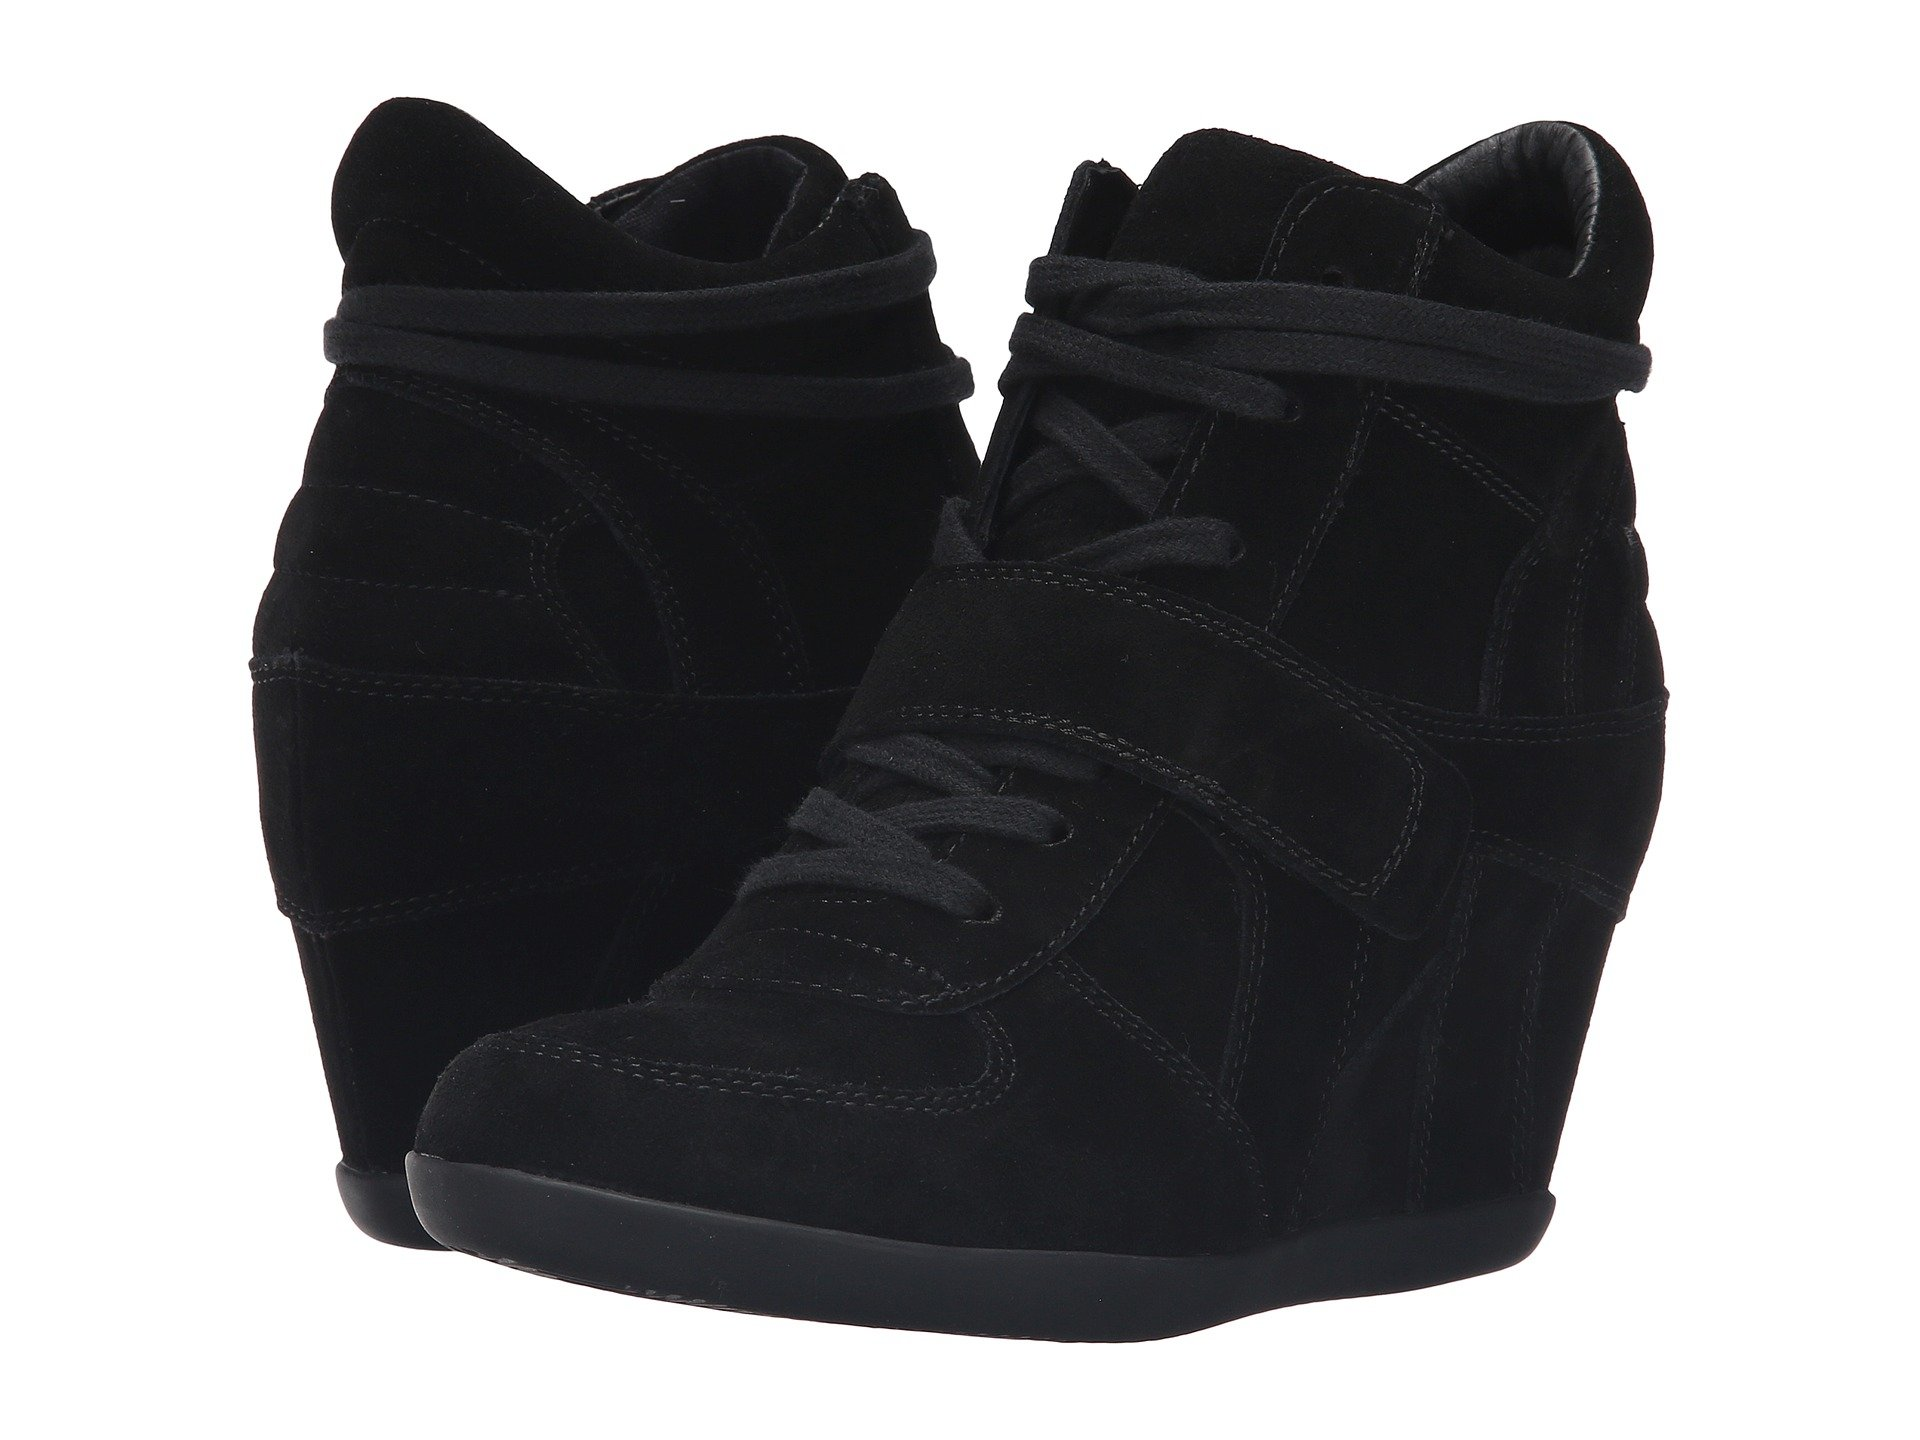 cbc783b67259 Wedge sneakers